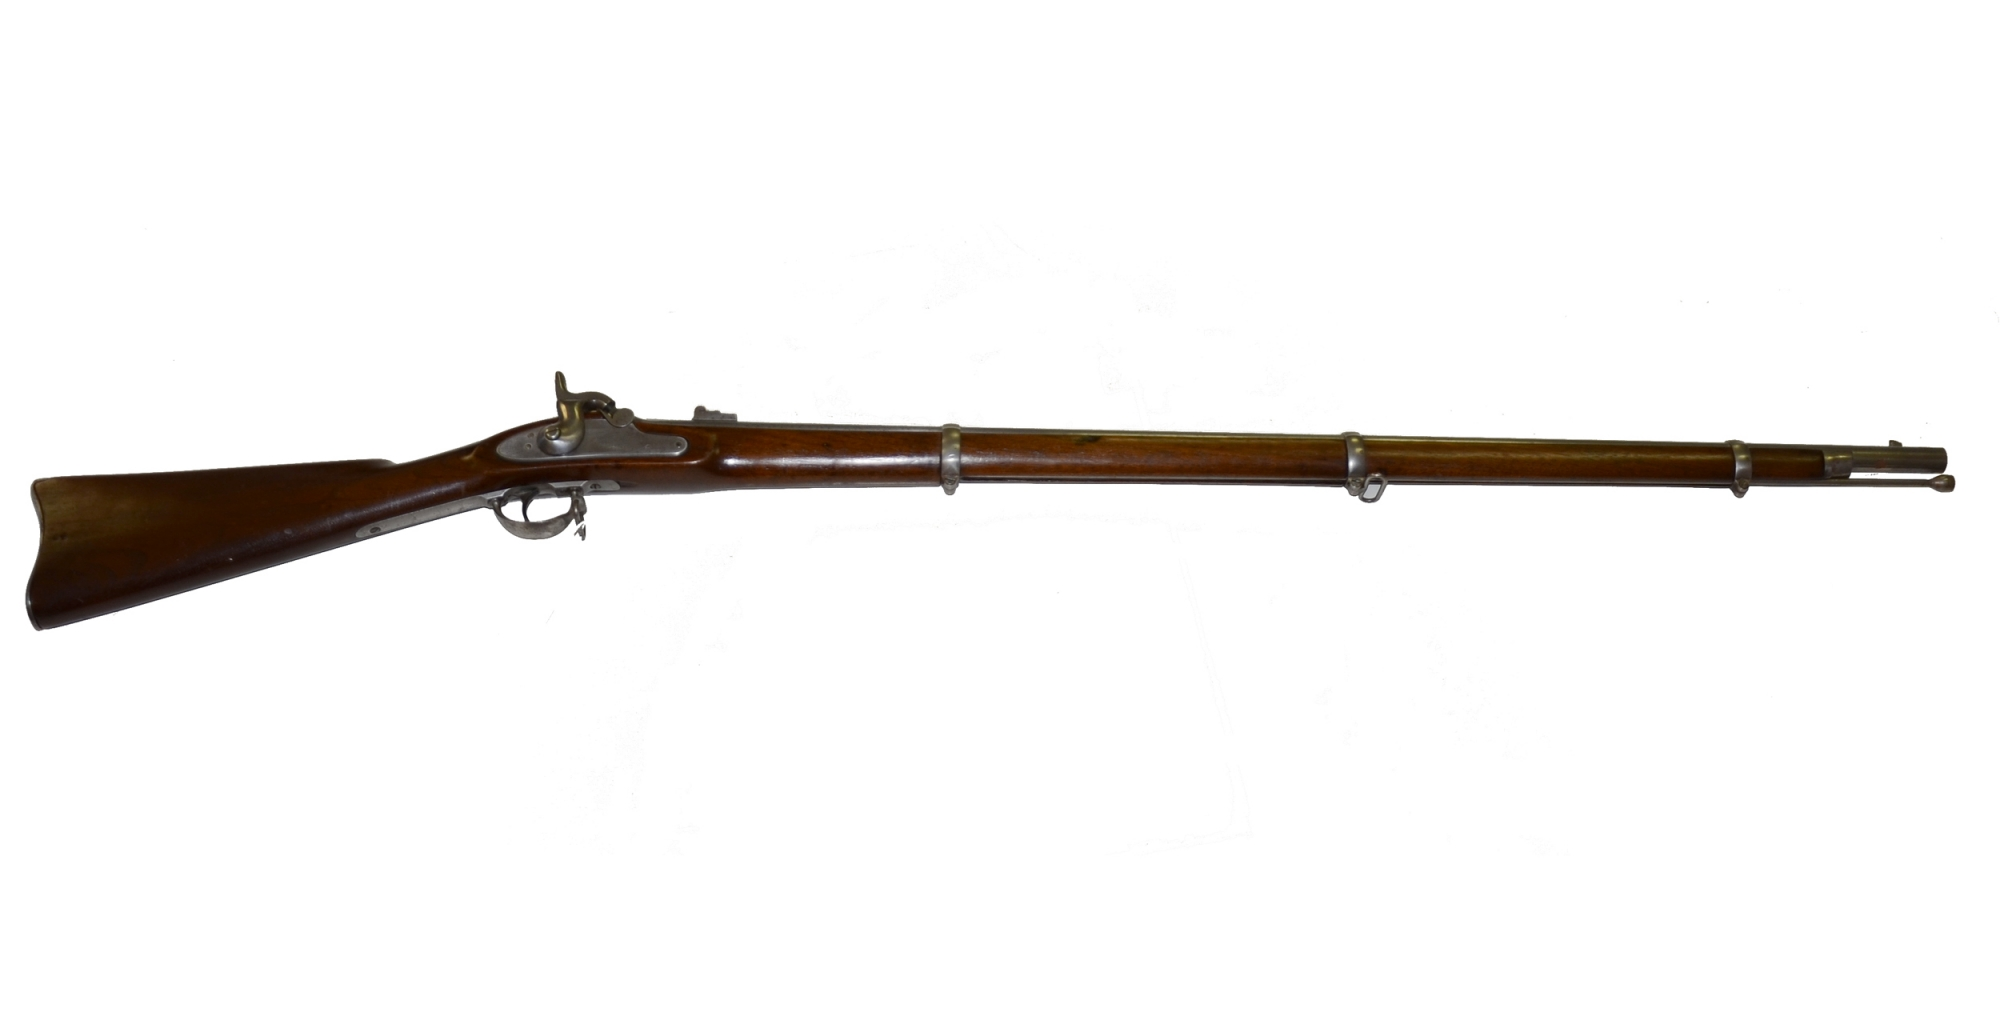 SPECIAL MODEL 1861 CONTRACT U.S. PERCUSSION RIFLE - MUSKET